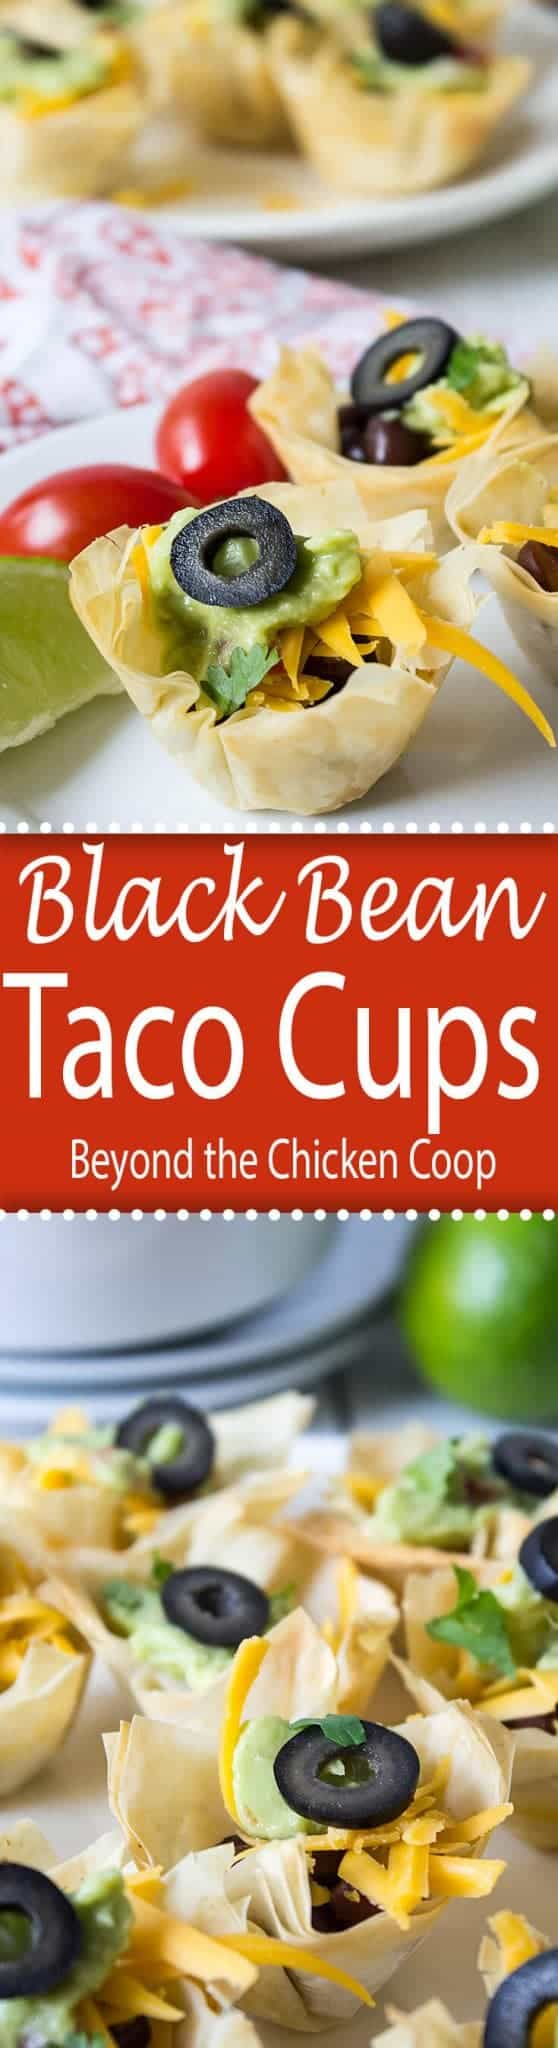 Black bean taco cups have phyllo dough shells and a black bean filling.